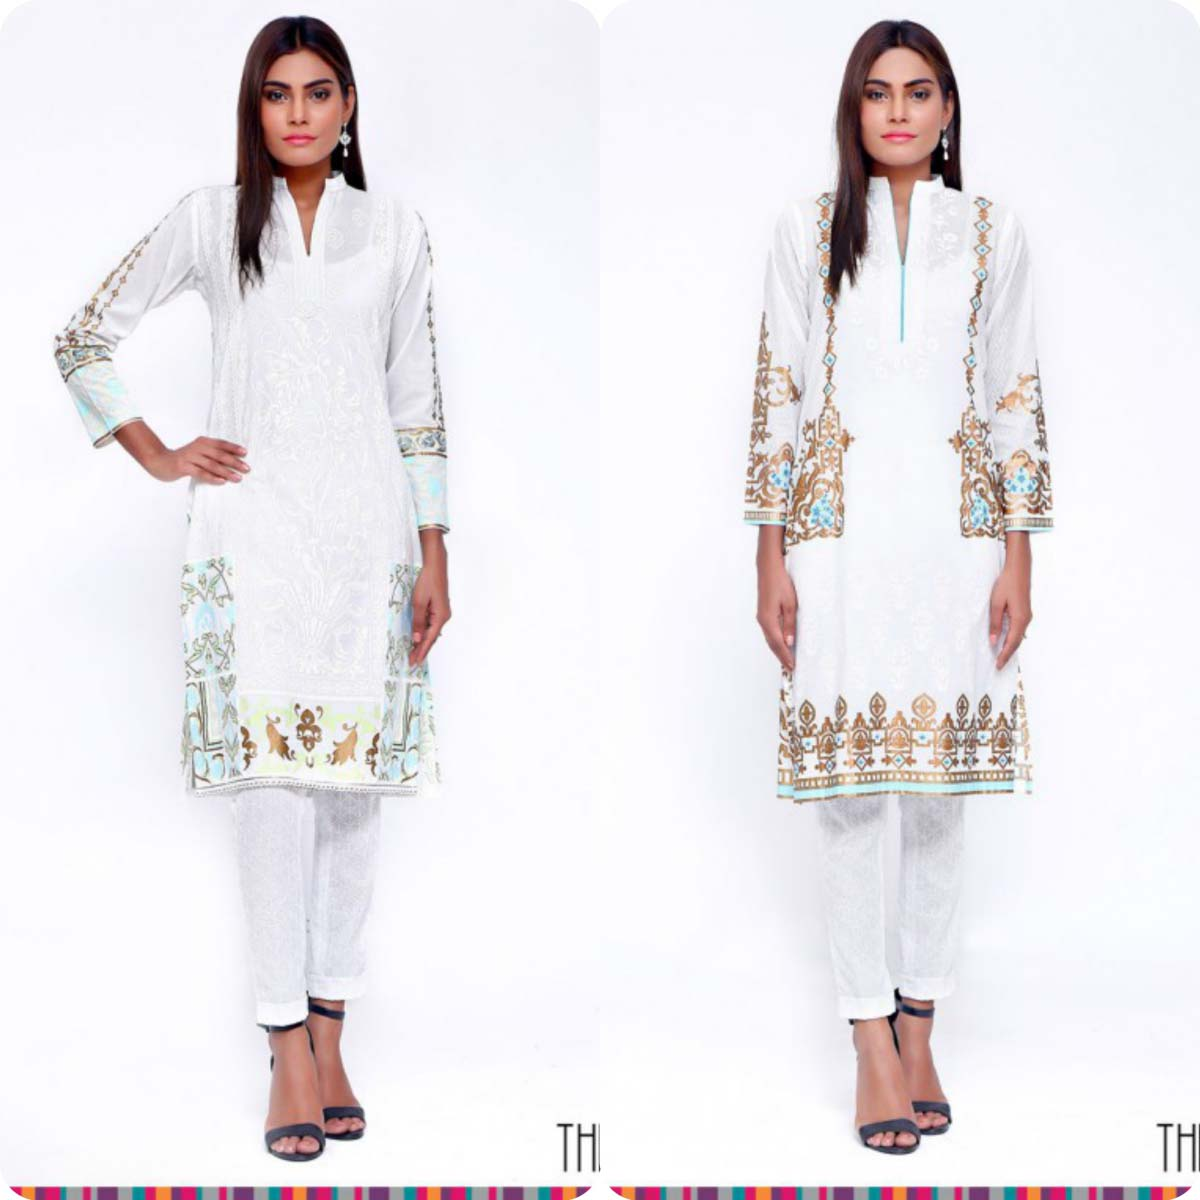 Stylish Embroidered Eid KurtisTunics for Girls By THREDZ 2016-2016 Complete Look-Book (11)